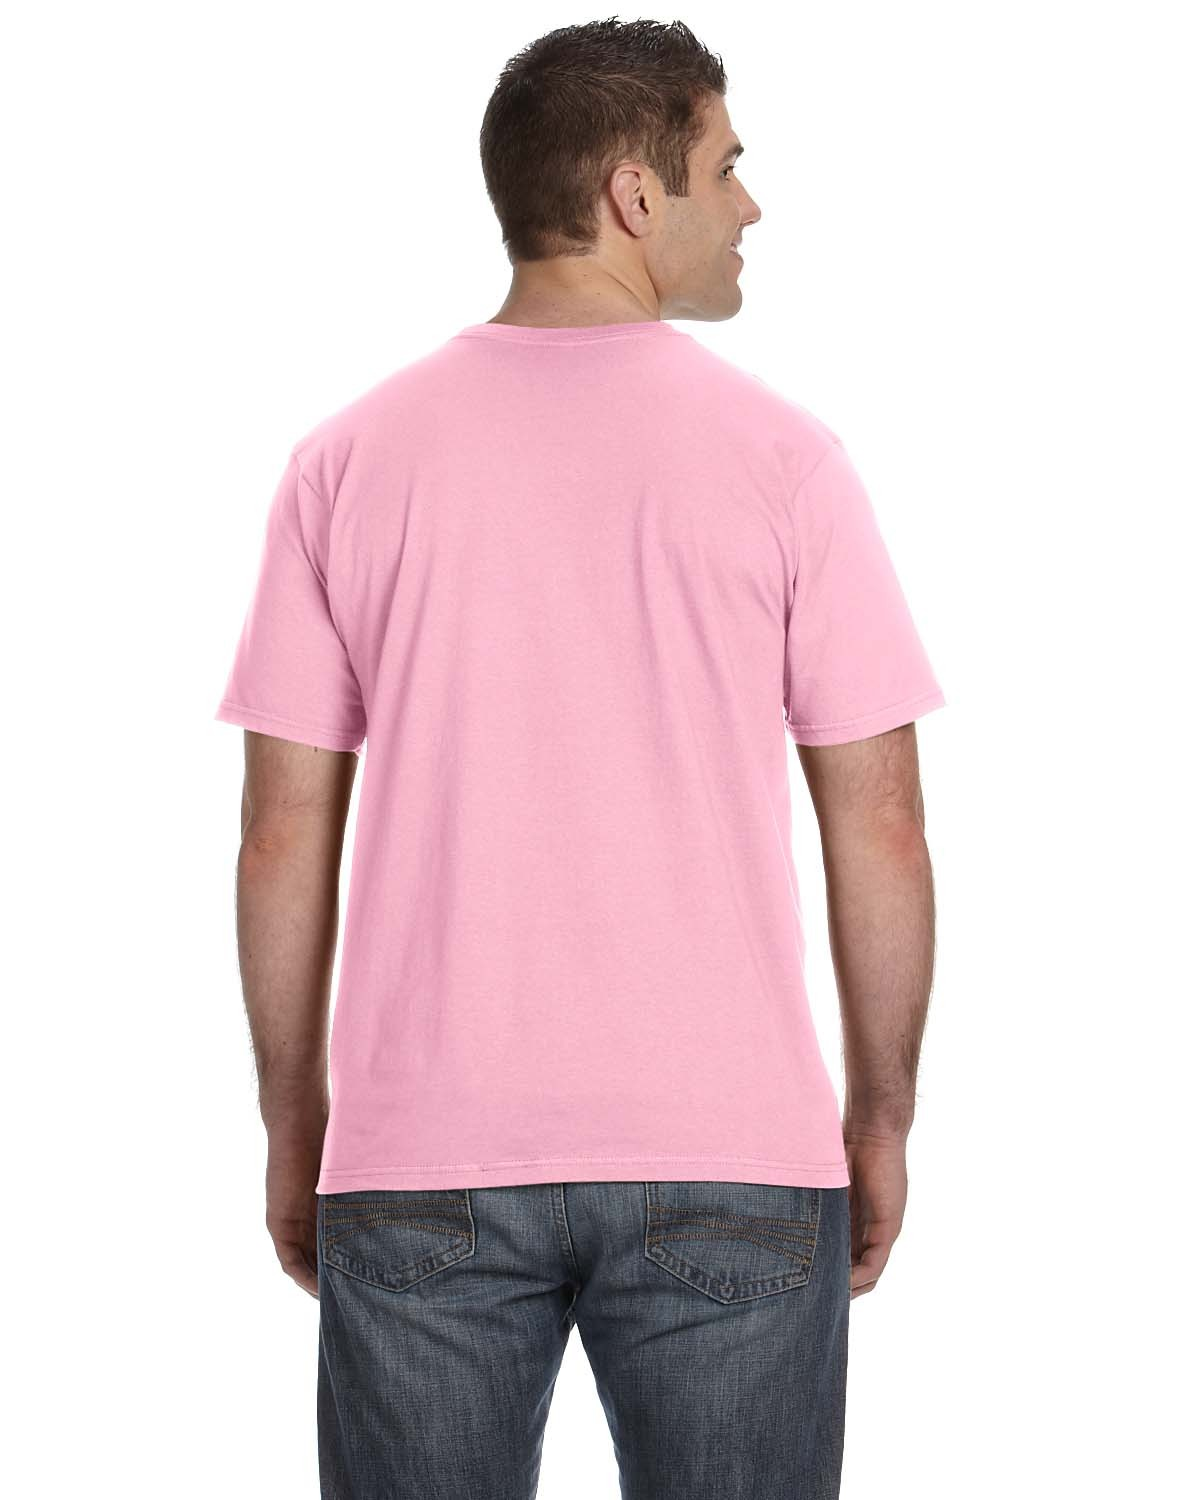 980 Anvil CHARITY PINK